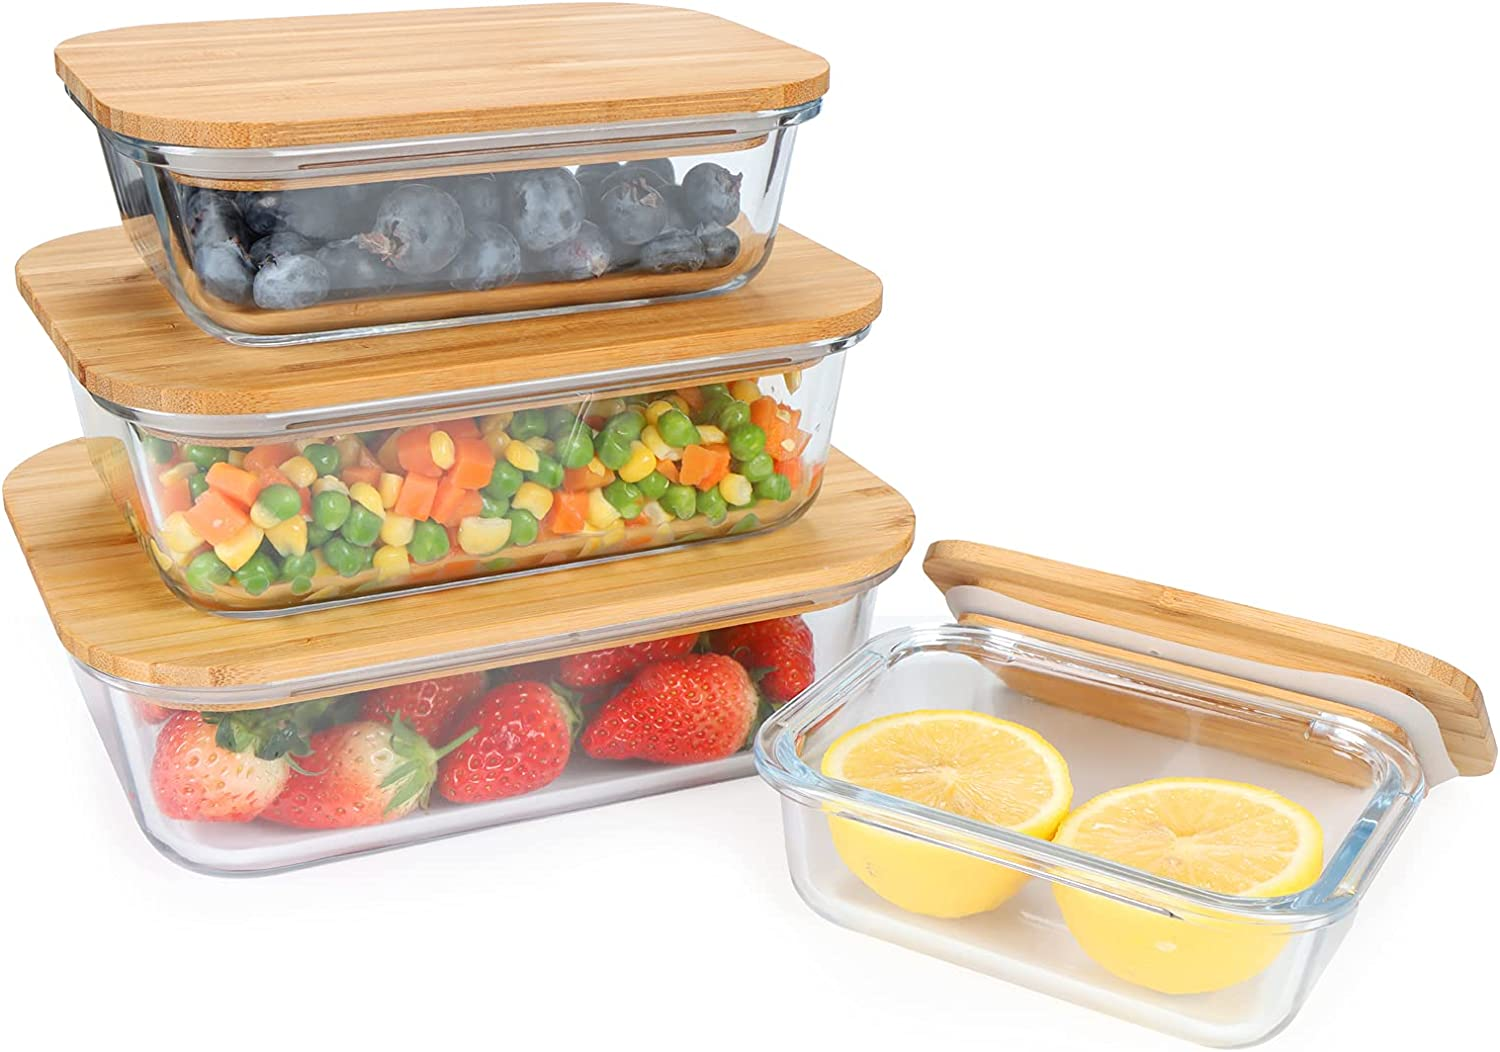 Glass Food Storage Containers sets with Bamboo Lids, Set of 4, Reusable. Plastic Free, BPA Free. Multi-Pack Glass Bamboo Boxes for Meal Prep, Leftovers, Baking, Cooking & Lunch.SimplyGarden